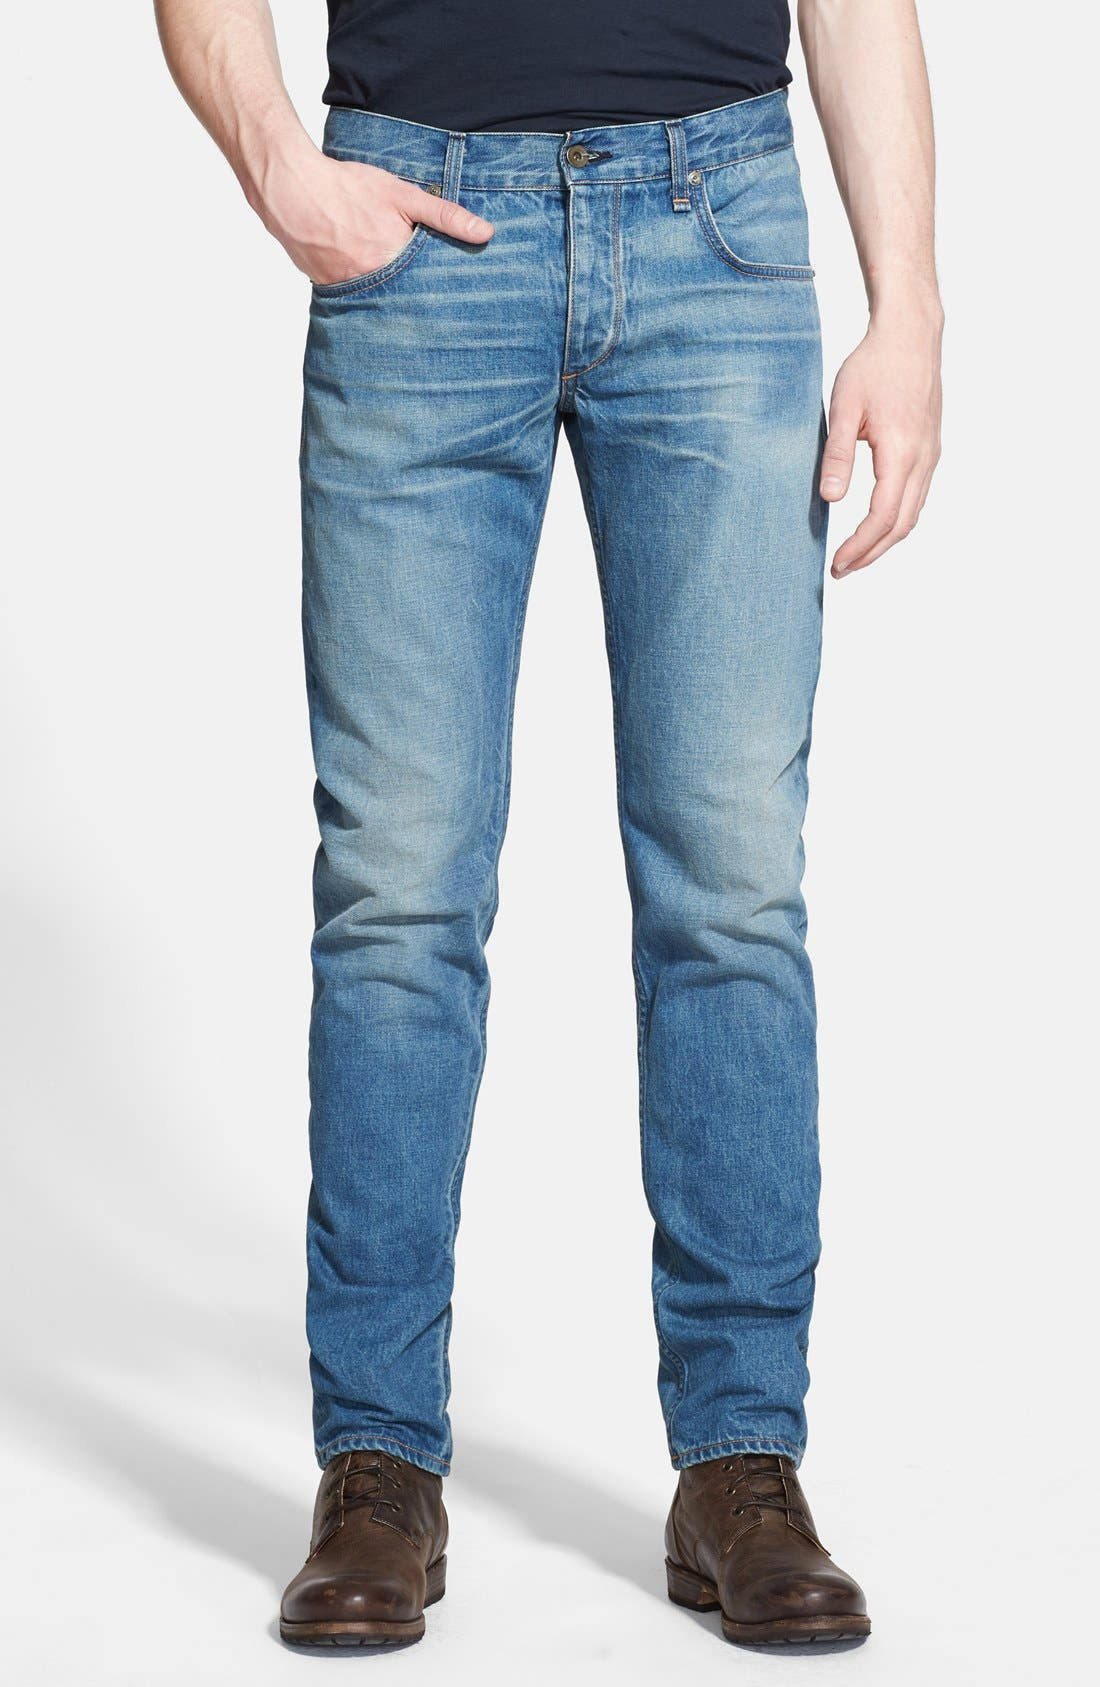 Alternate Image 1 Selected - rag & bone 'RB23X' Slim Fit Jeans (Coastline Blue)